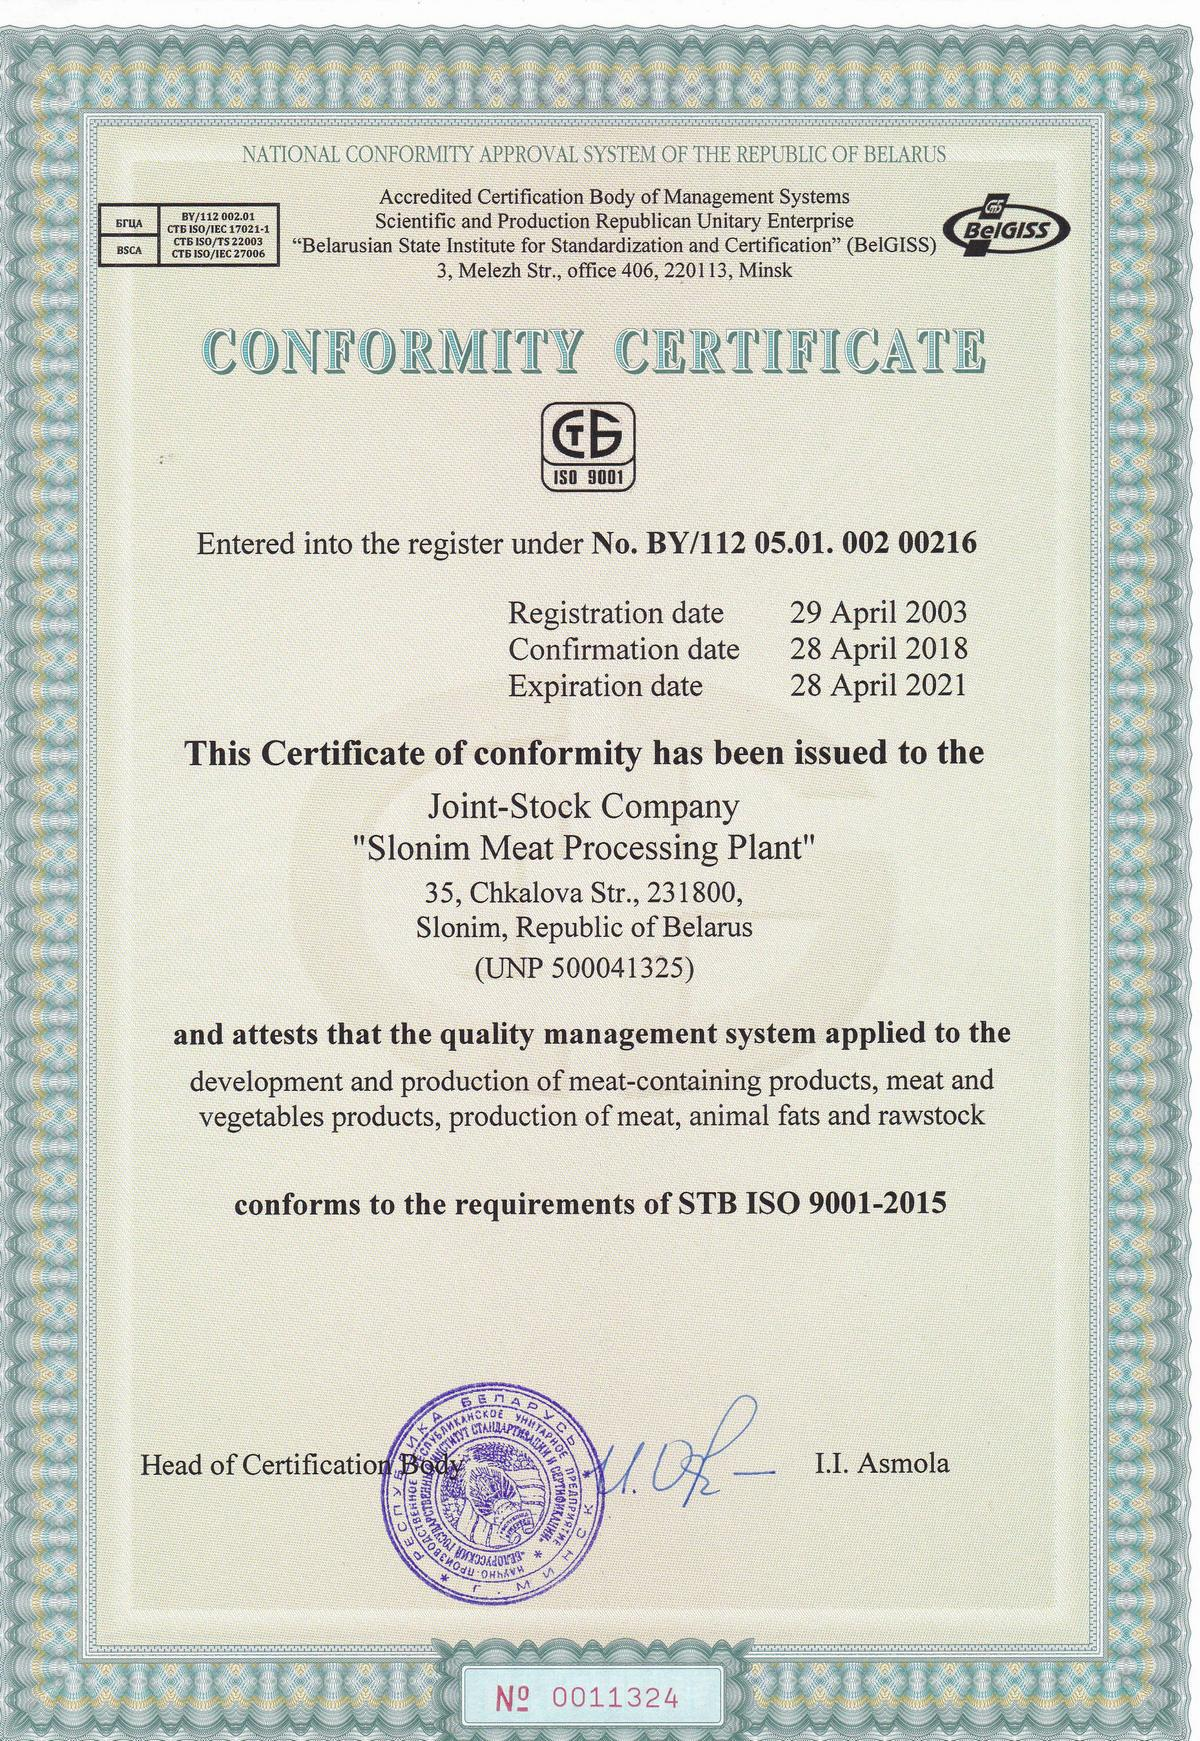 Conformity Certificate to the requirements of STB ISO 9001-2015